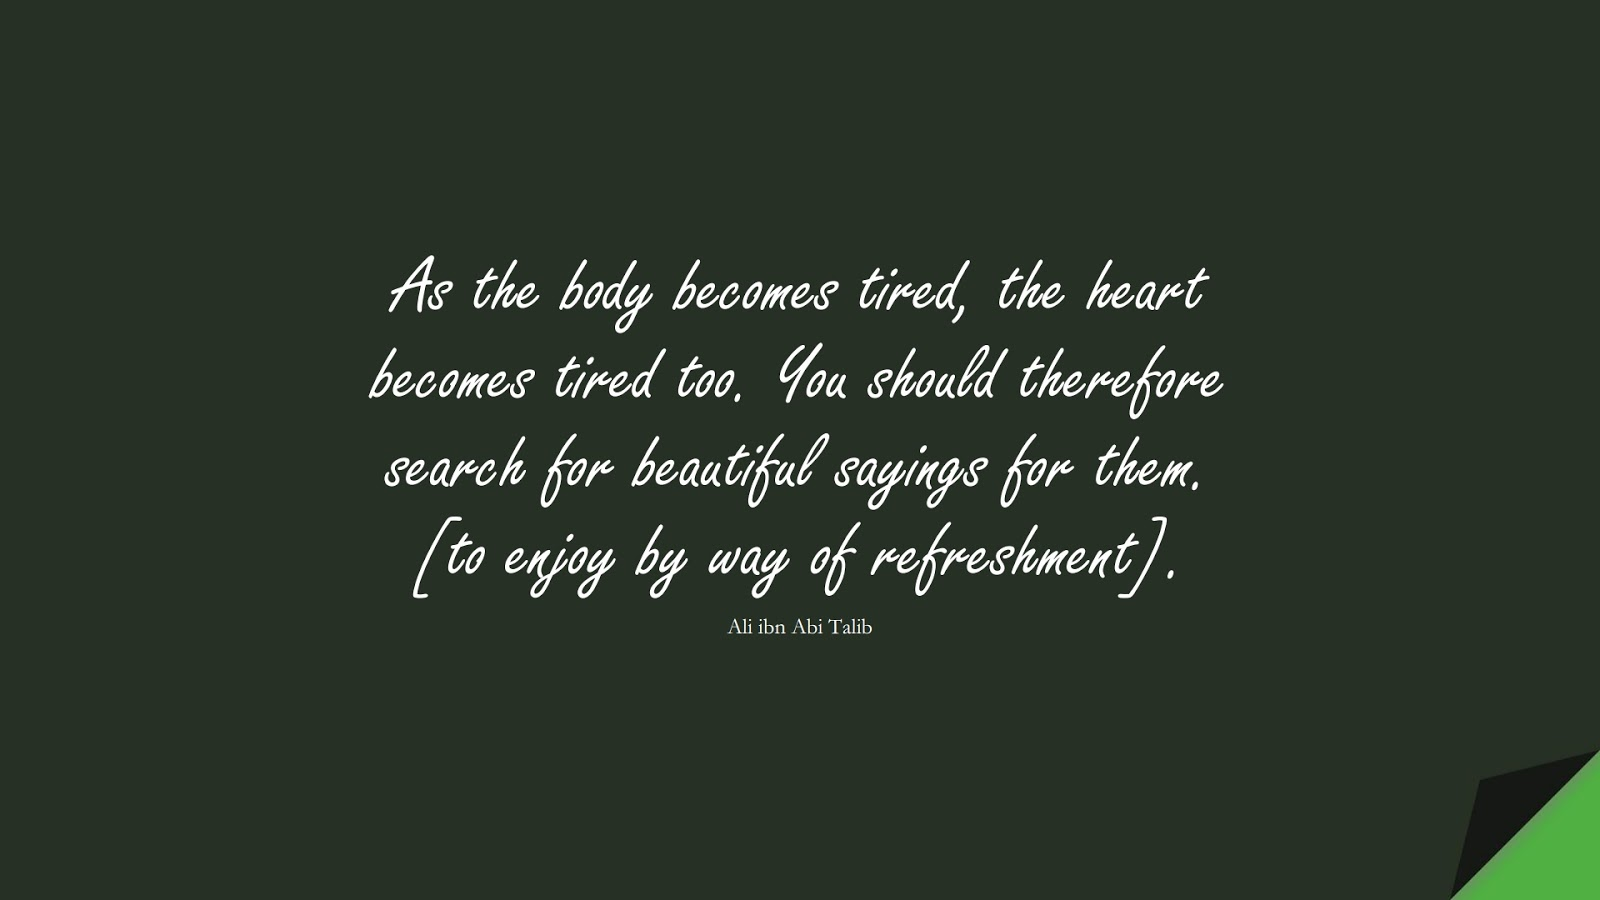 As the body becomes tired, the heart becomes tired too. You should therefore search for beautiful sayings for them. [to enjoy by way of refreshment]. (Ali ibn Abi Talib);  #AliQuotes